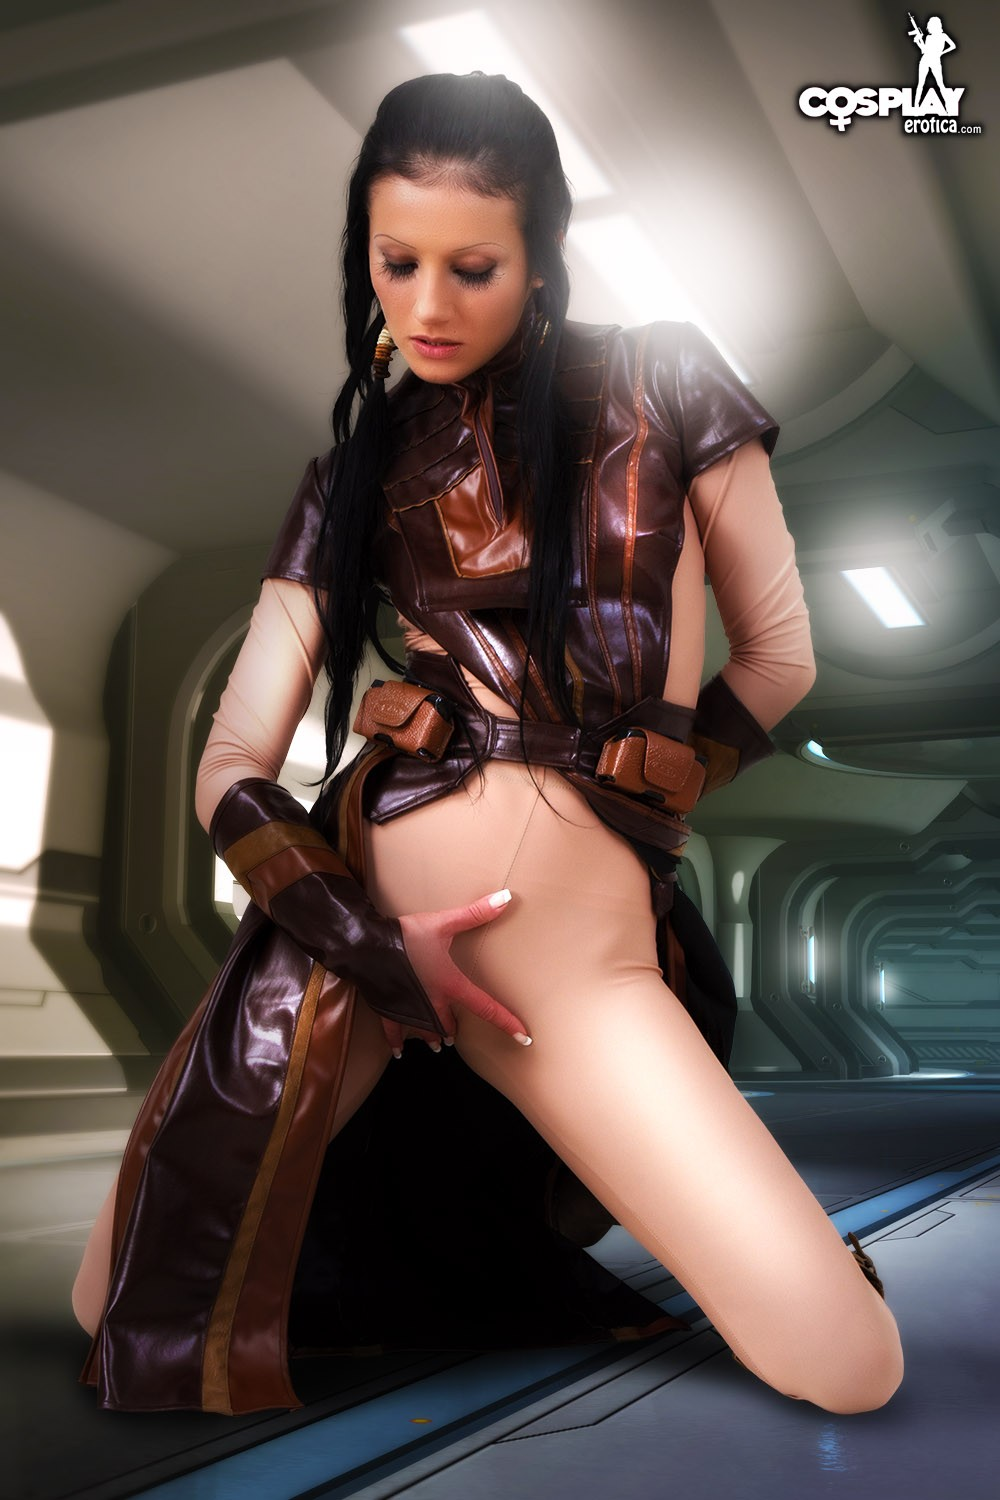 Star wars nude mod sexual image